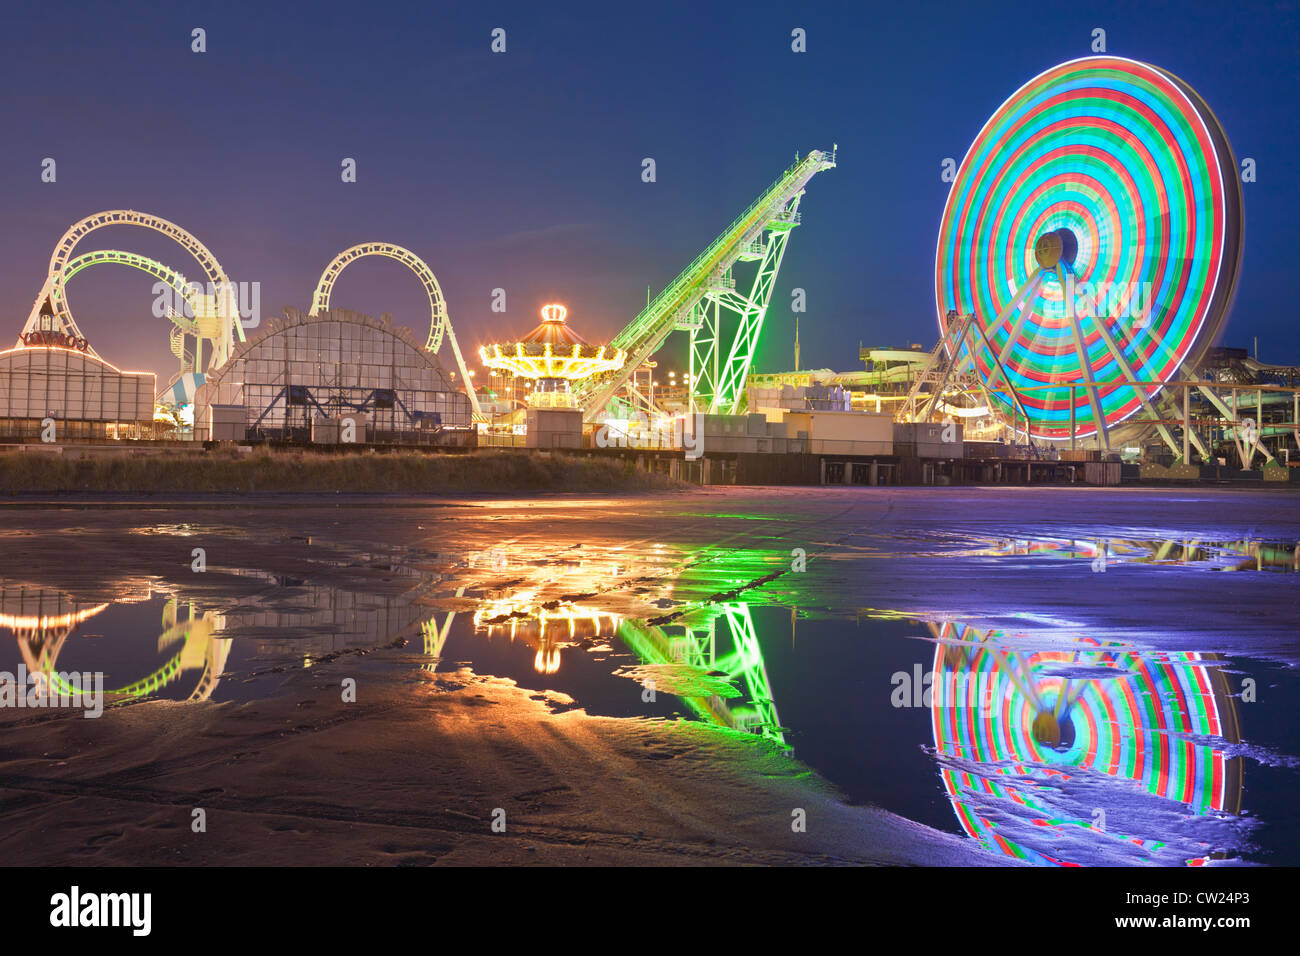 Carnival thrill rides on Morey's Piers Amusement Park, Wildwood, New Jersey - Stock Image